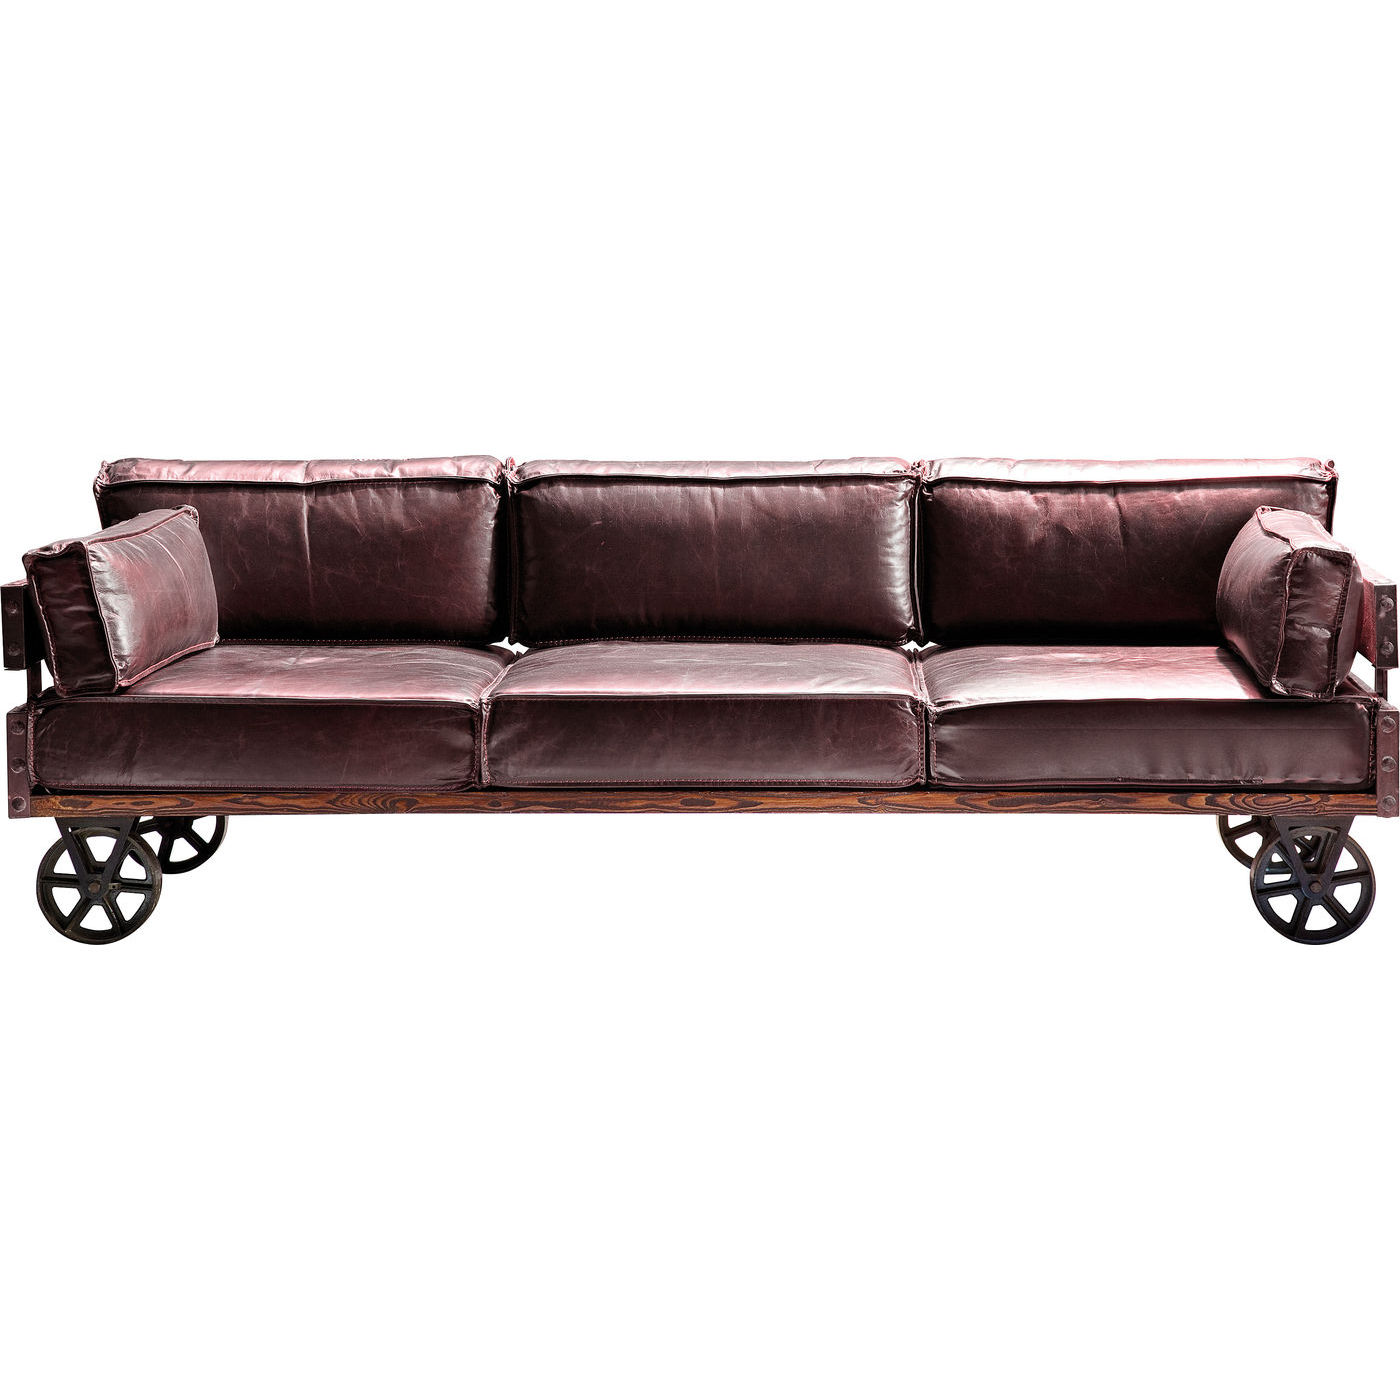 Image of   Railway - 3 pers design sofa